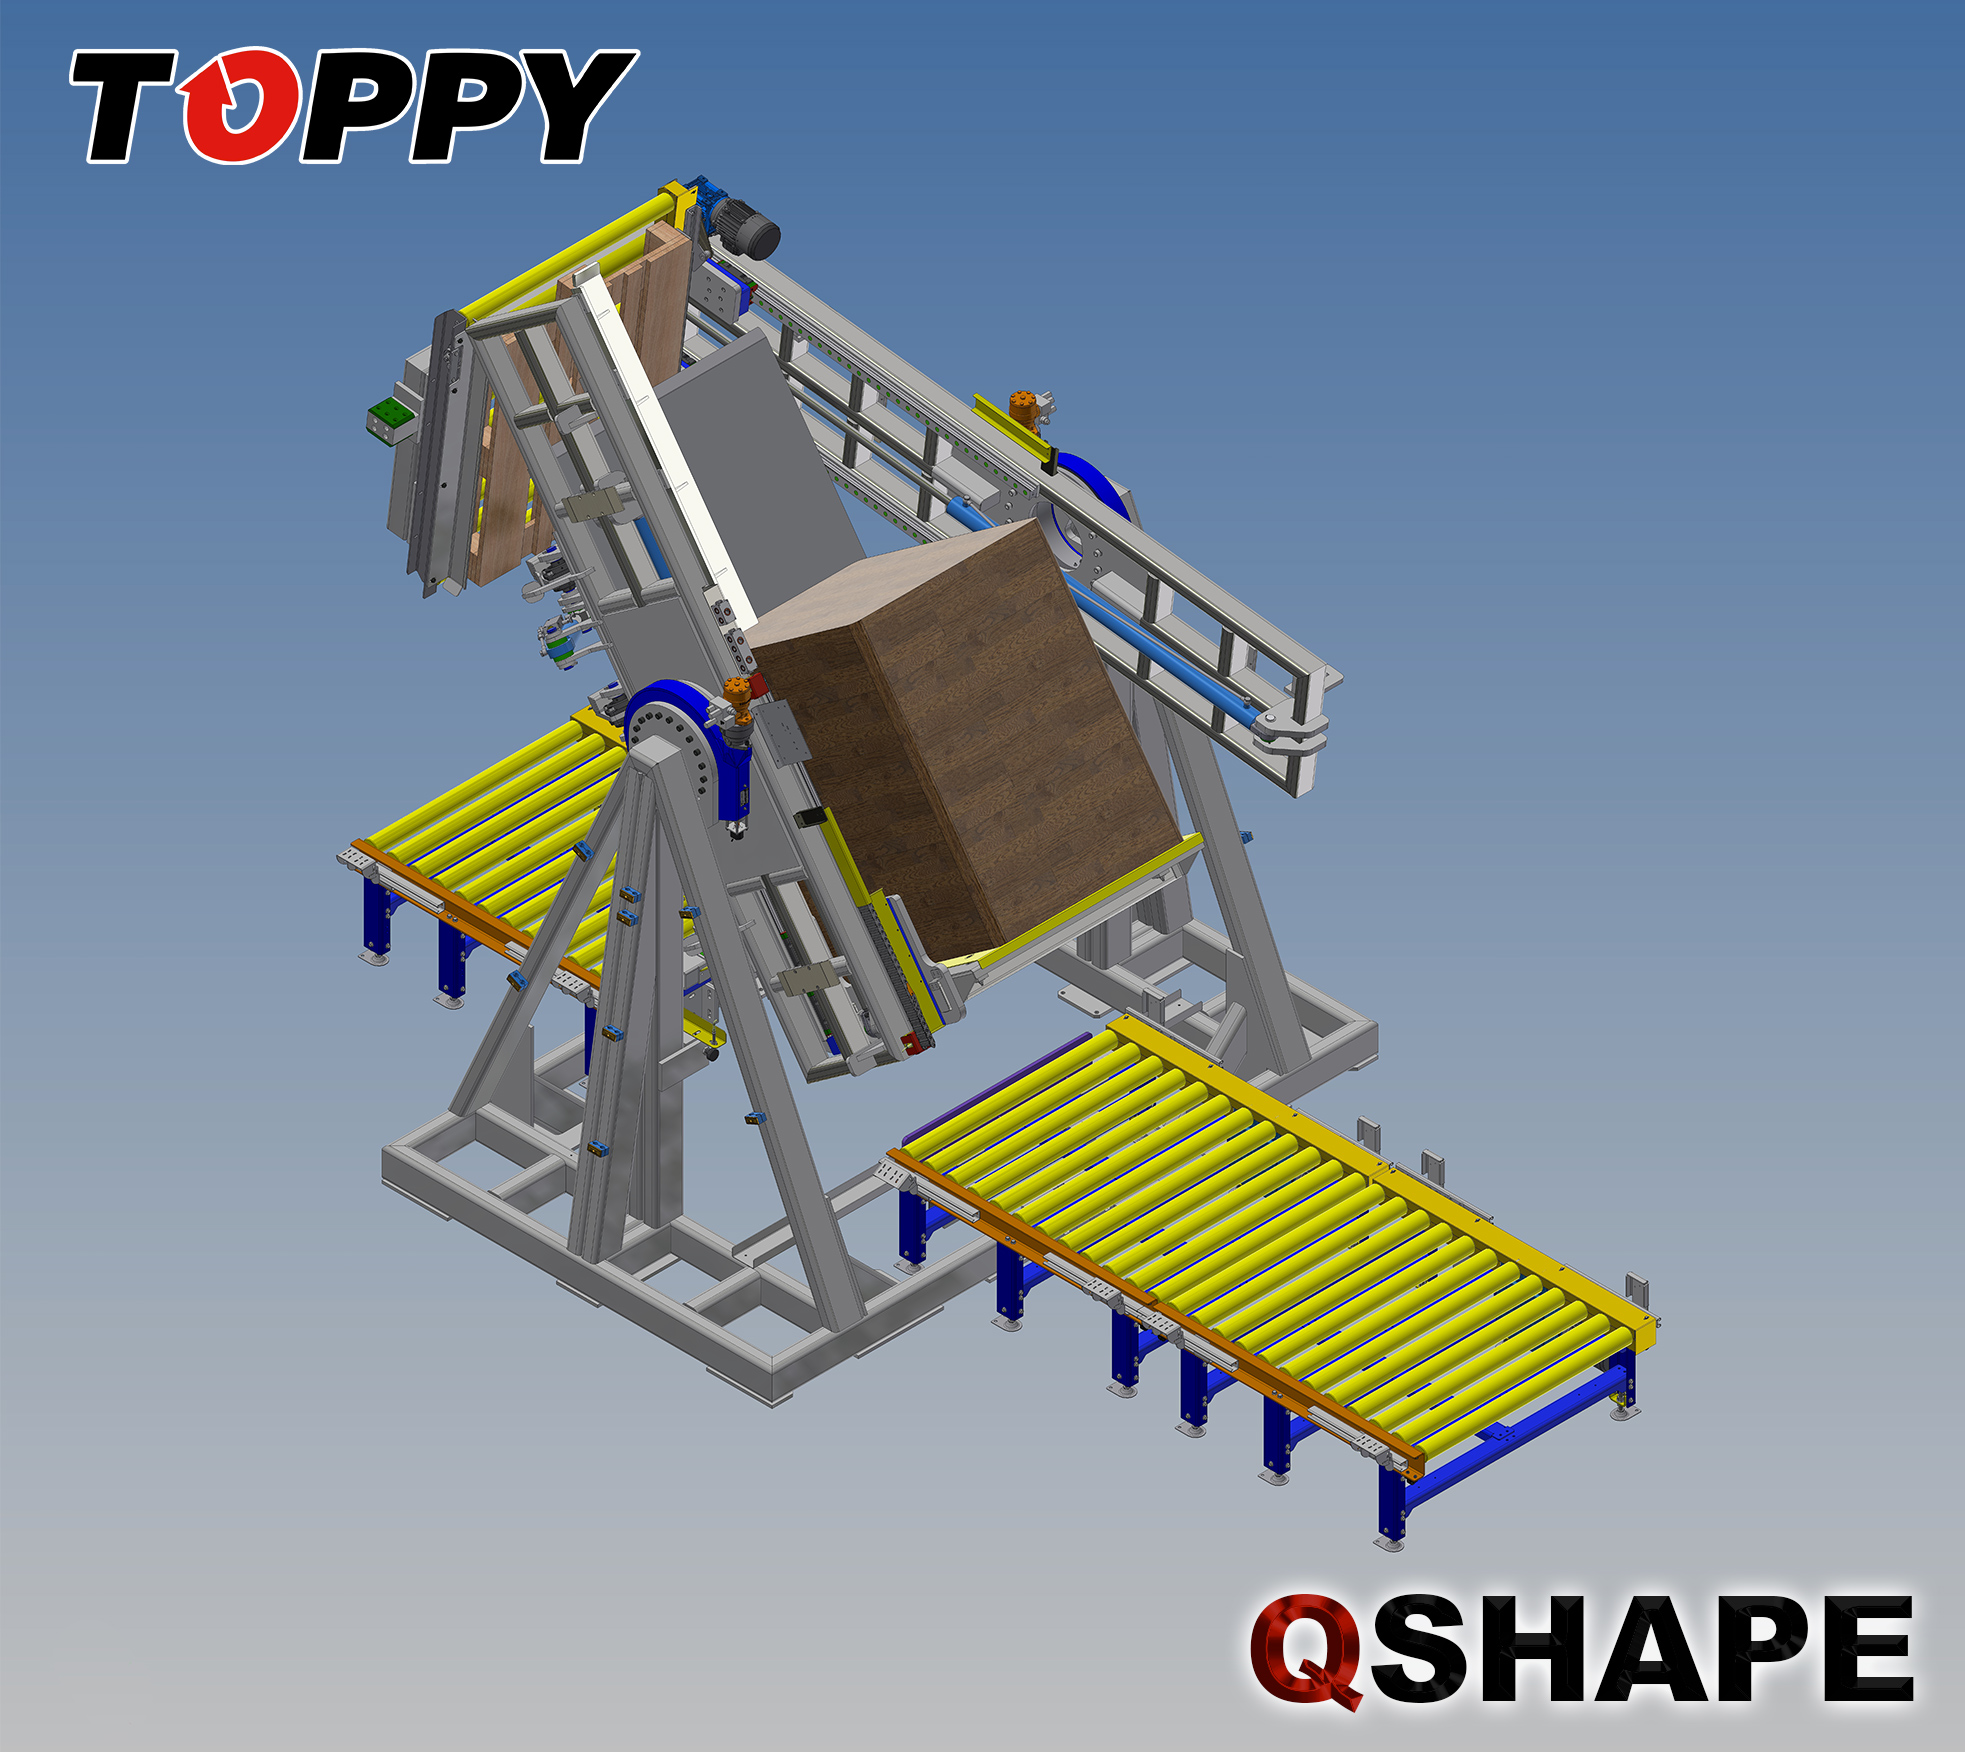 pallet changer Q-Shape with background